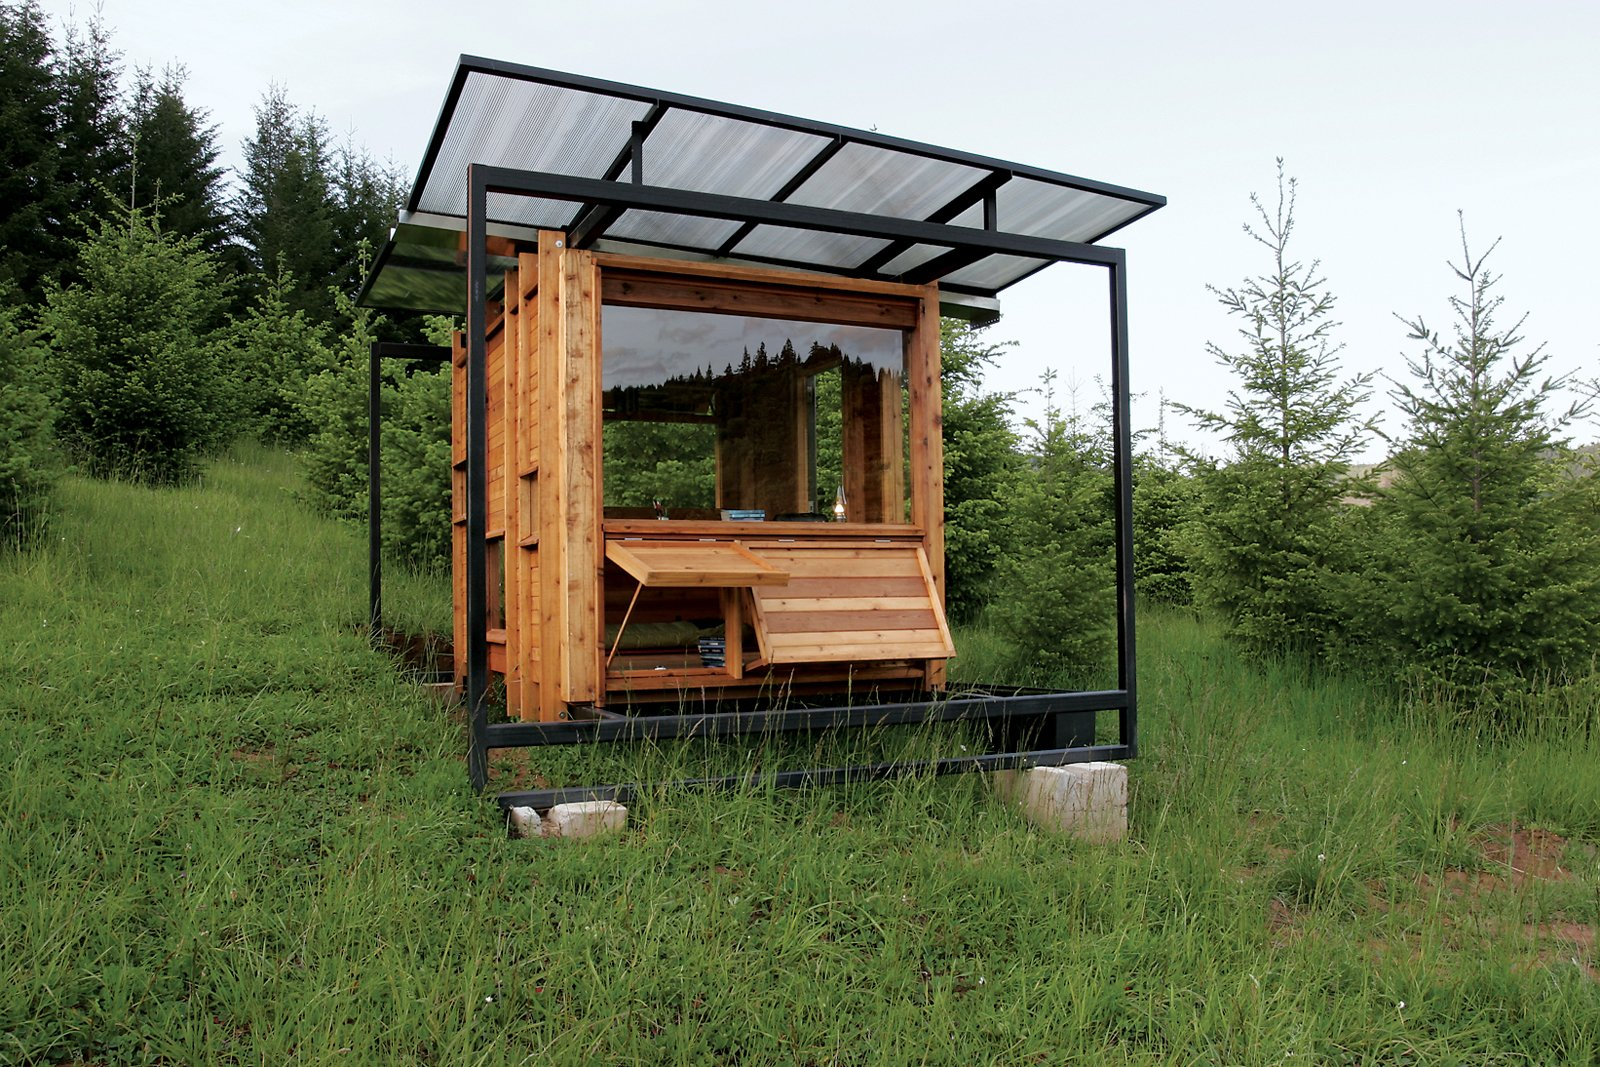 "Erin Moore of FLOAT Architectural Research and Design, based in Tucson, Arizona, designed a 70-square-foot writer's retreat in Wren, Oregon, for her mother, Kathleen Dean Moore, a nature writer and professor of philosophy at nearby Oregon State University. The elder Moore wanted a small studio in which to work and observe the delicate wetland ecosystem on the banks of the Marys River. Enlisting her daughter's design expertise, her professor husband's carpentry savoir faire, the aid of friends, and a front loader, Kathleen and her crew erected the structure in September 2007. Photo by Gary Tarleton. Totally off the grid—–Kathleen forgoes the computer and writes by hand when there—–the Watershed was designed to tread as lightly on the fragile ecosystem as the wild turkeys and Western pond turtles that live nearby. "" Tagged: Exterior, Cabin Building Type, Tiny Home Building Type, and Wood Siding Material.  Photo 98 of 101 in 101 Best Modern Cabins from Modern Off-the-Grid Retreat in Oregon"